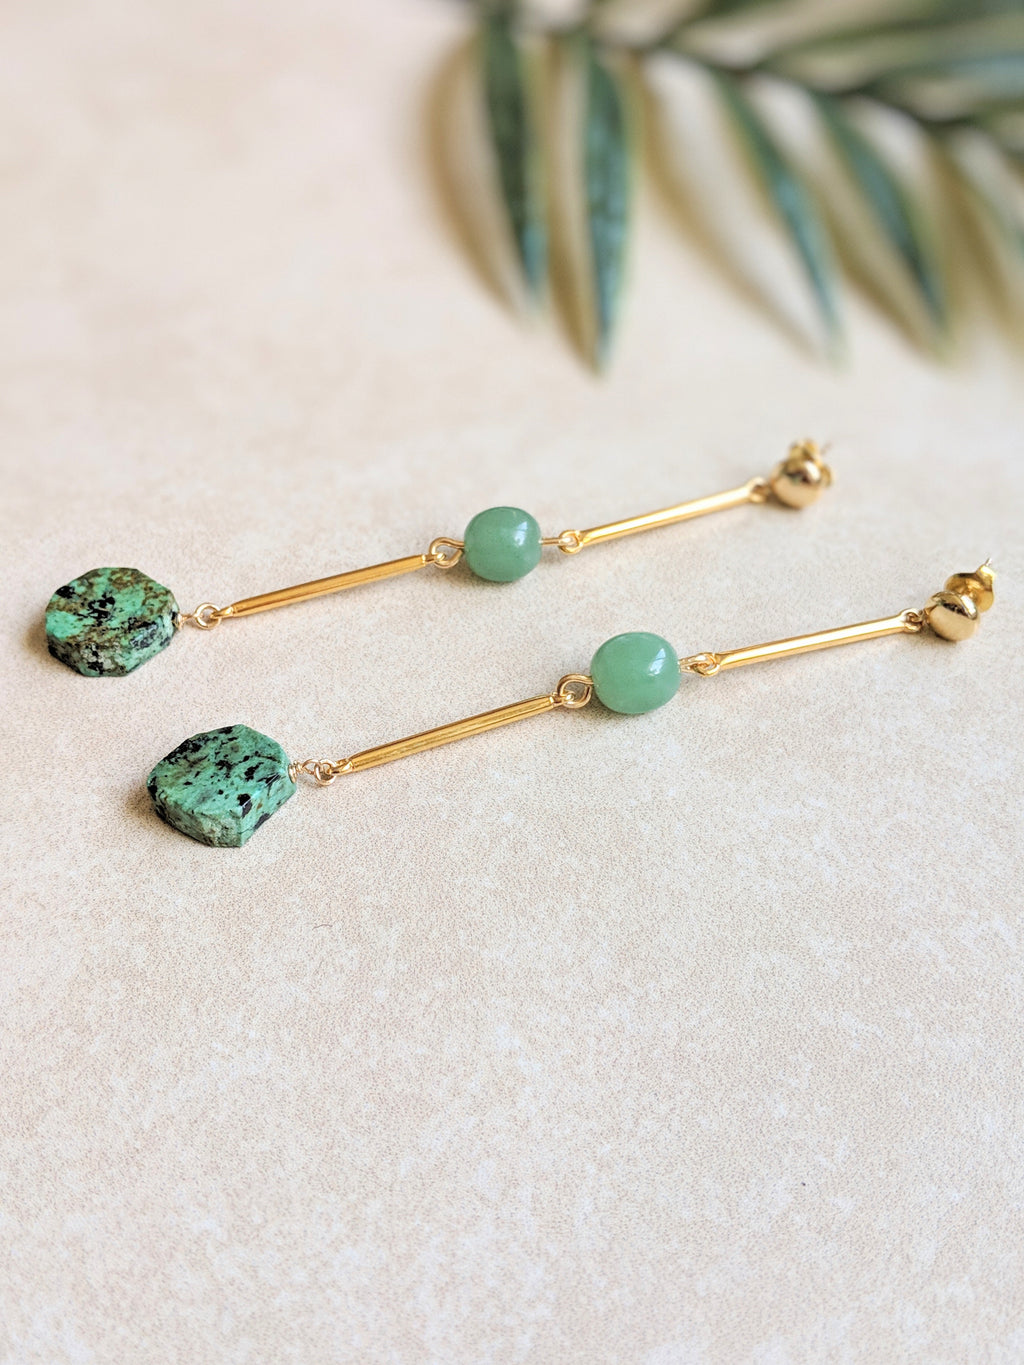 Aventurine and Turquoise in gold